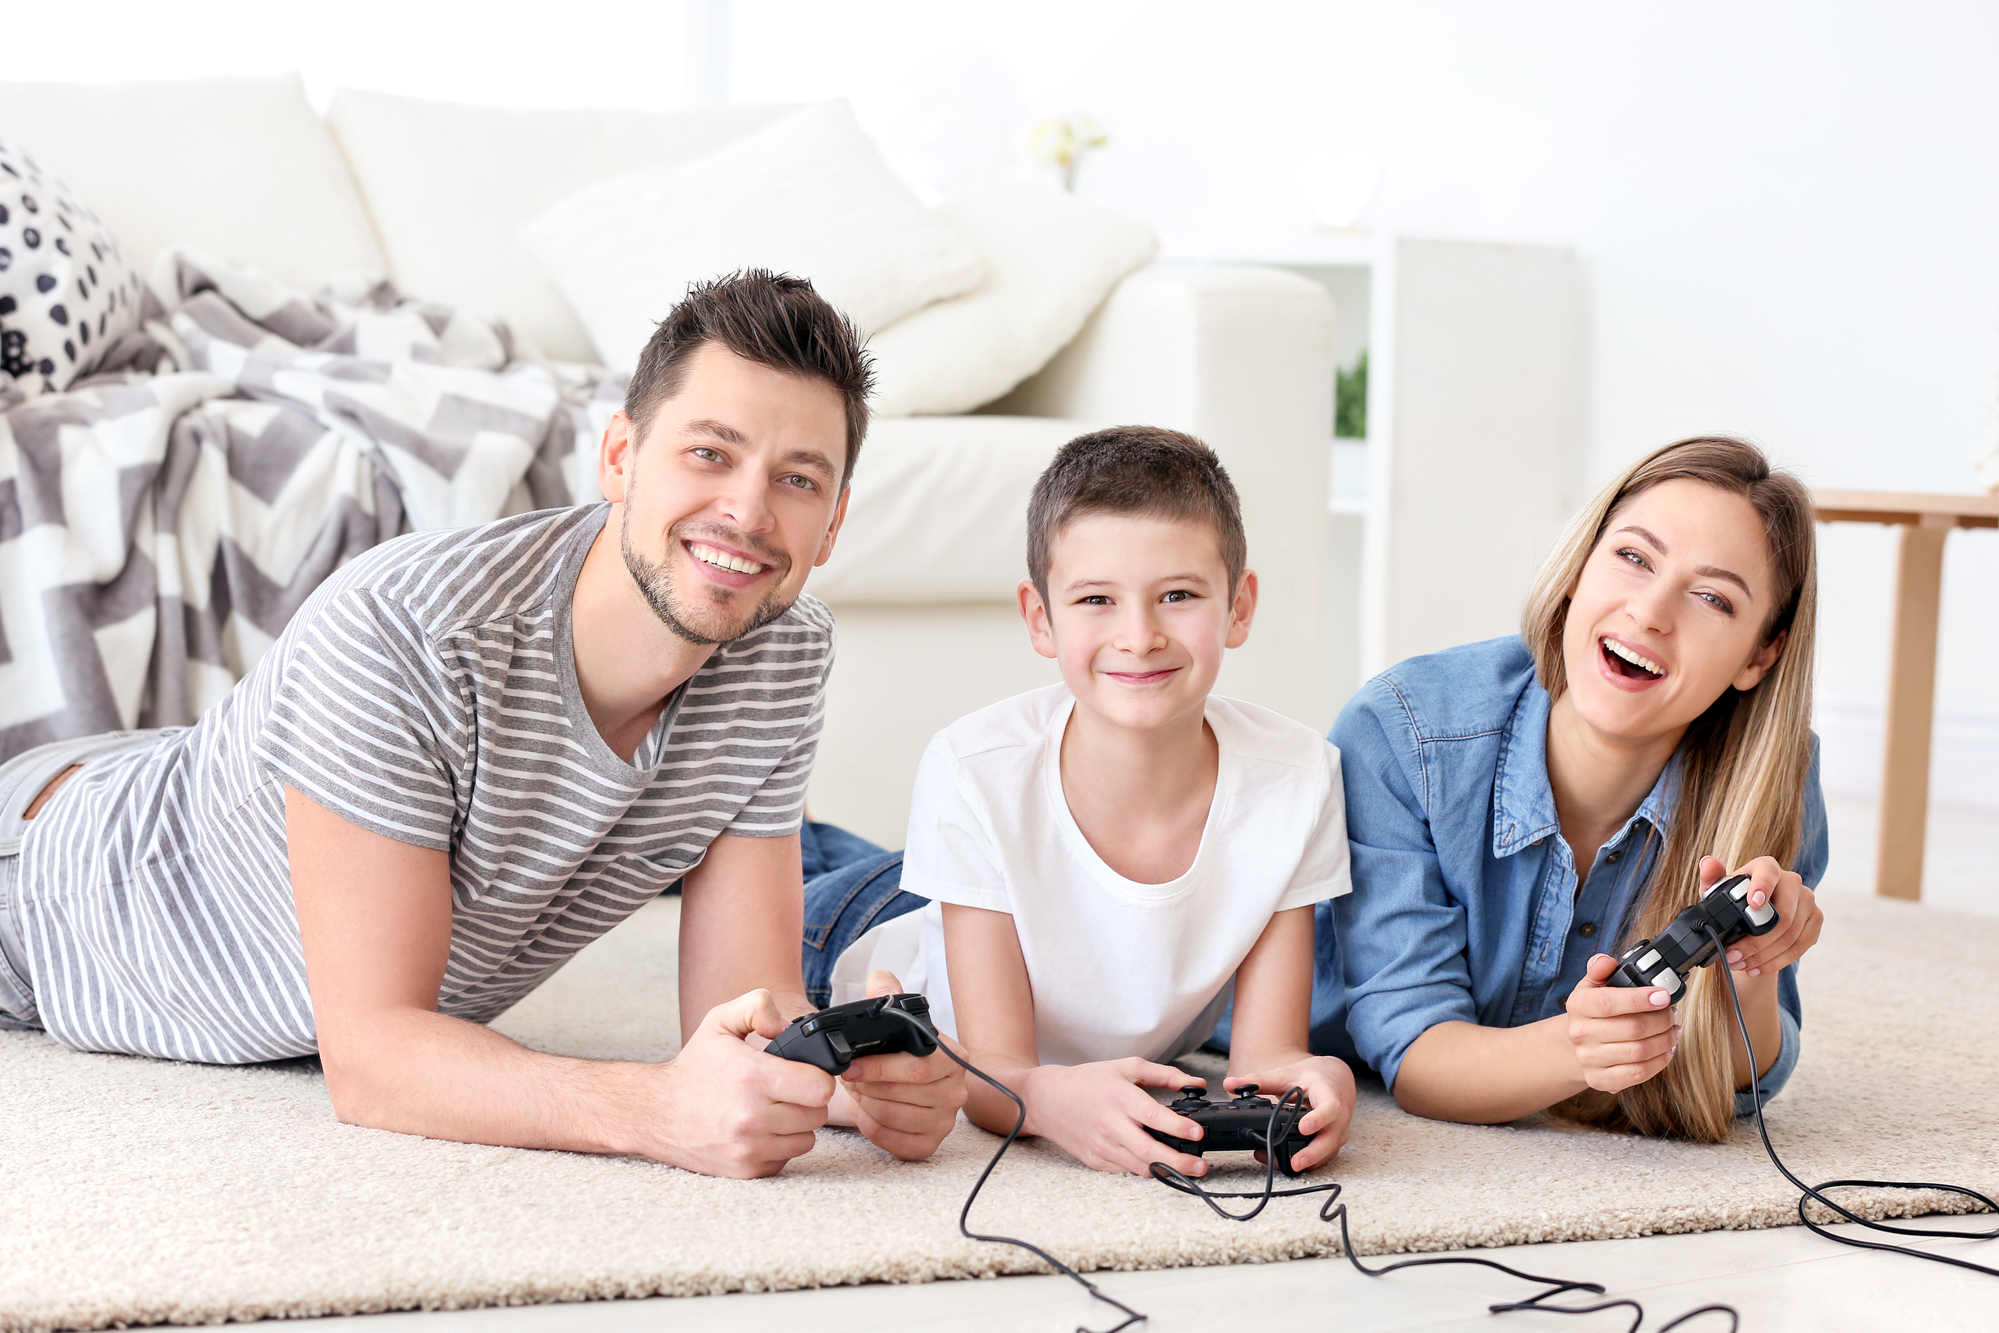 The Five Love Languages Through Playing Video Games and How Every Parent Can Mas